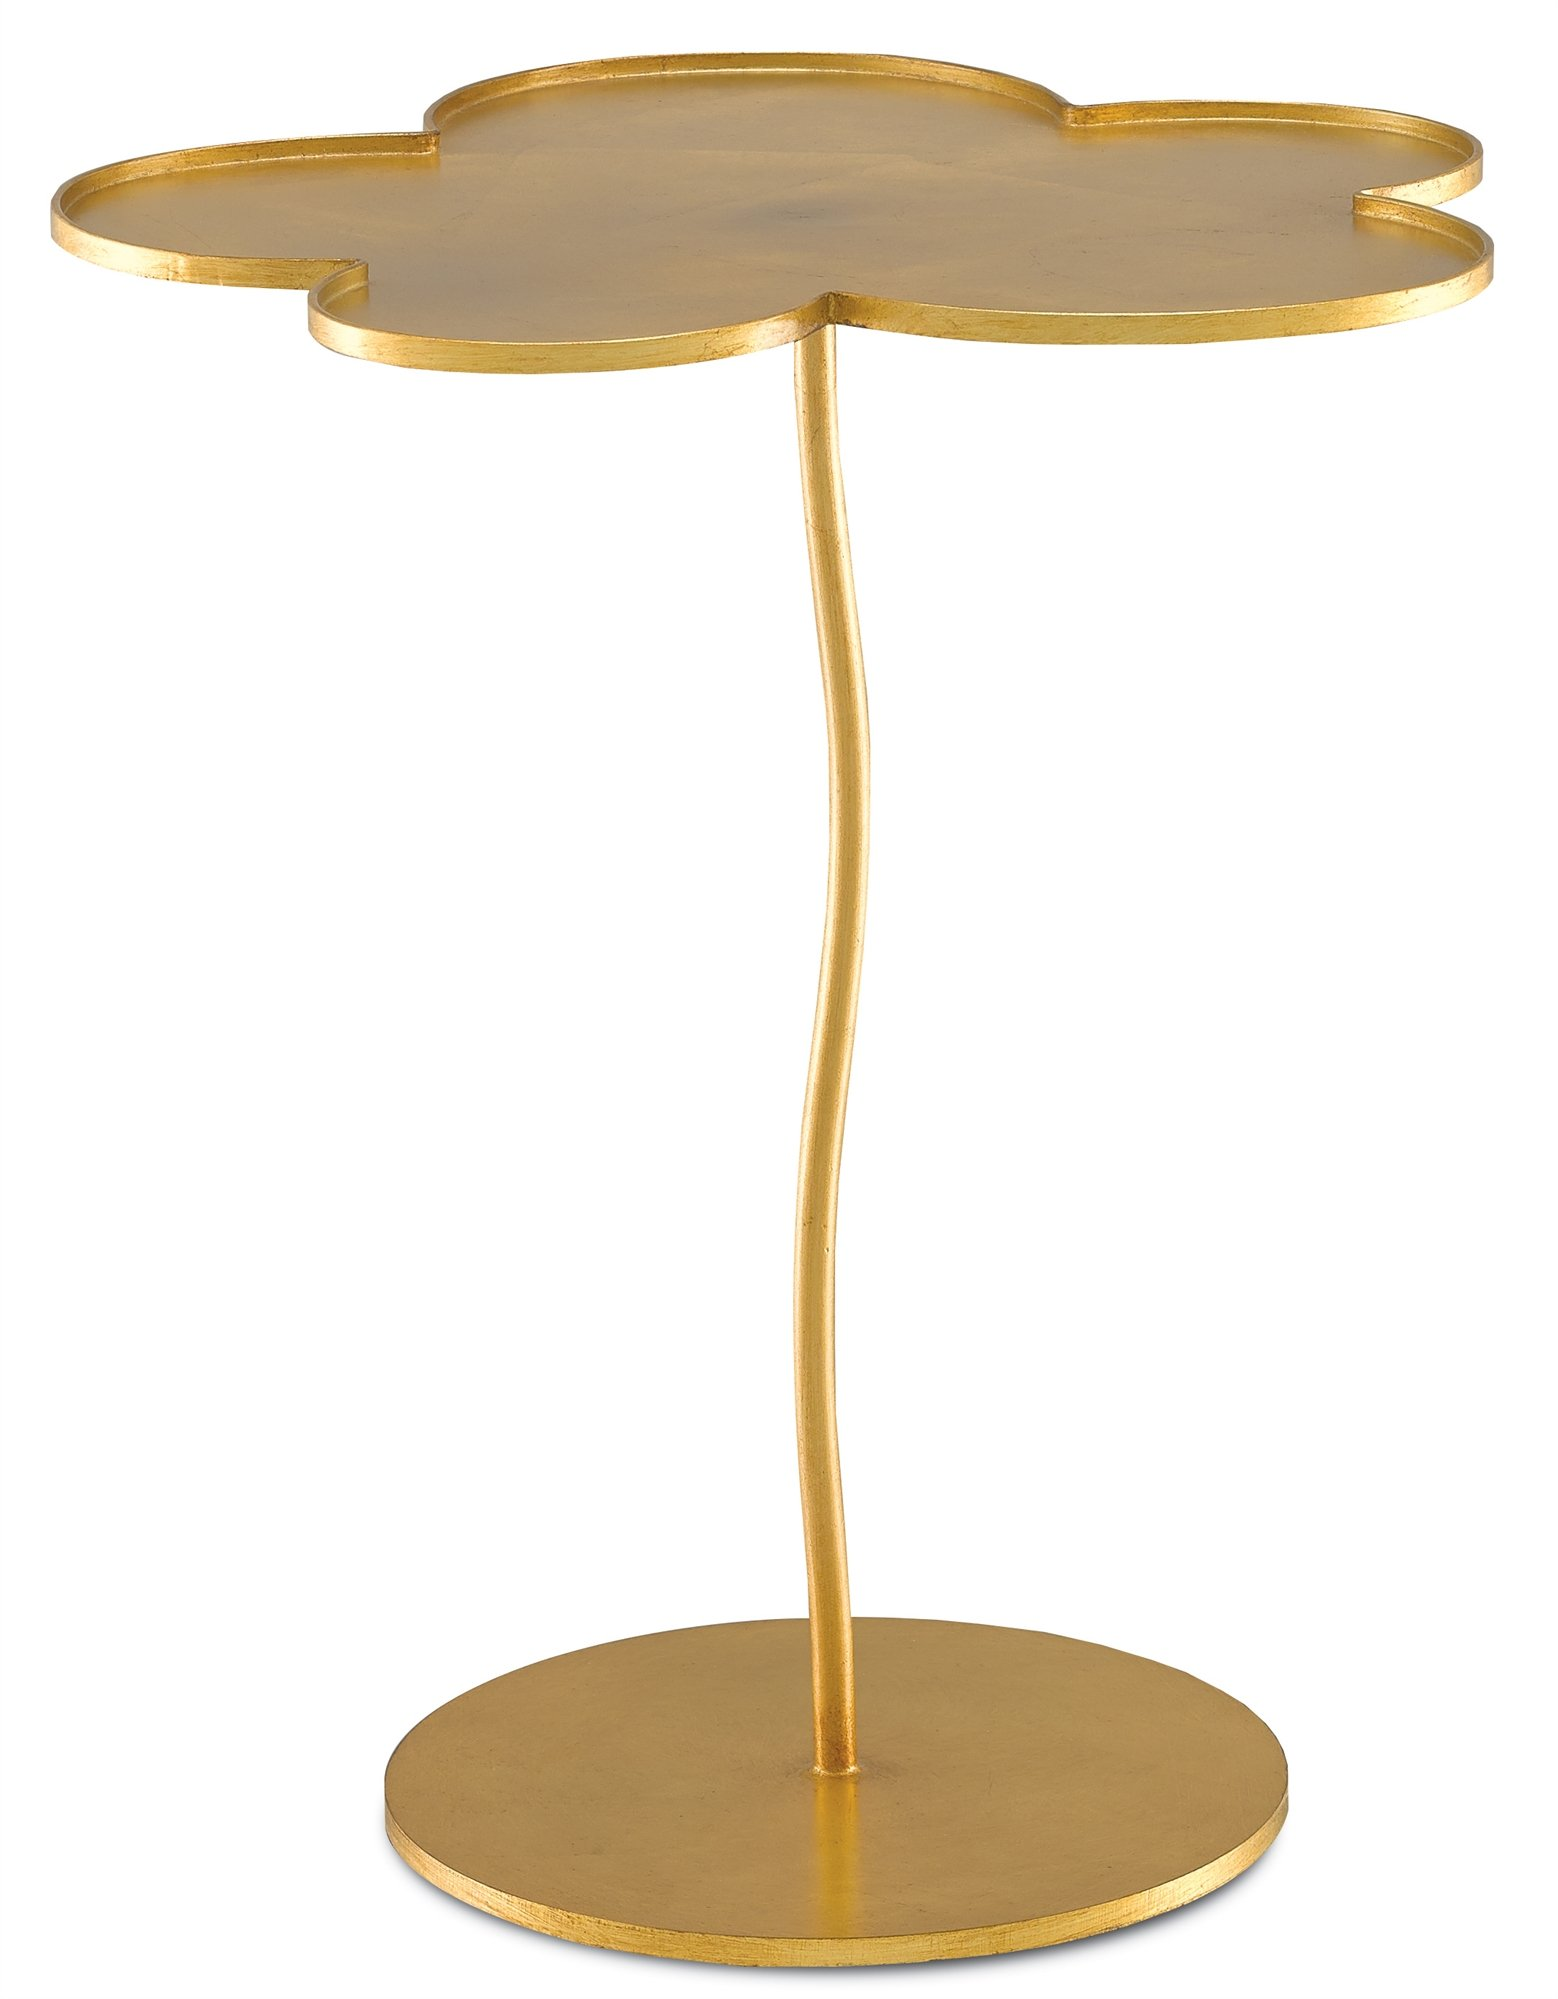 currey and company fleur small accent table lovecup brass harvest setting king bedding sets bedroom lights ceramic end stool coffee runner apothecary cabinet target transparent